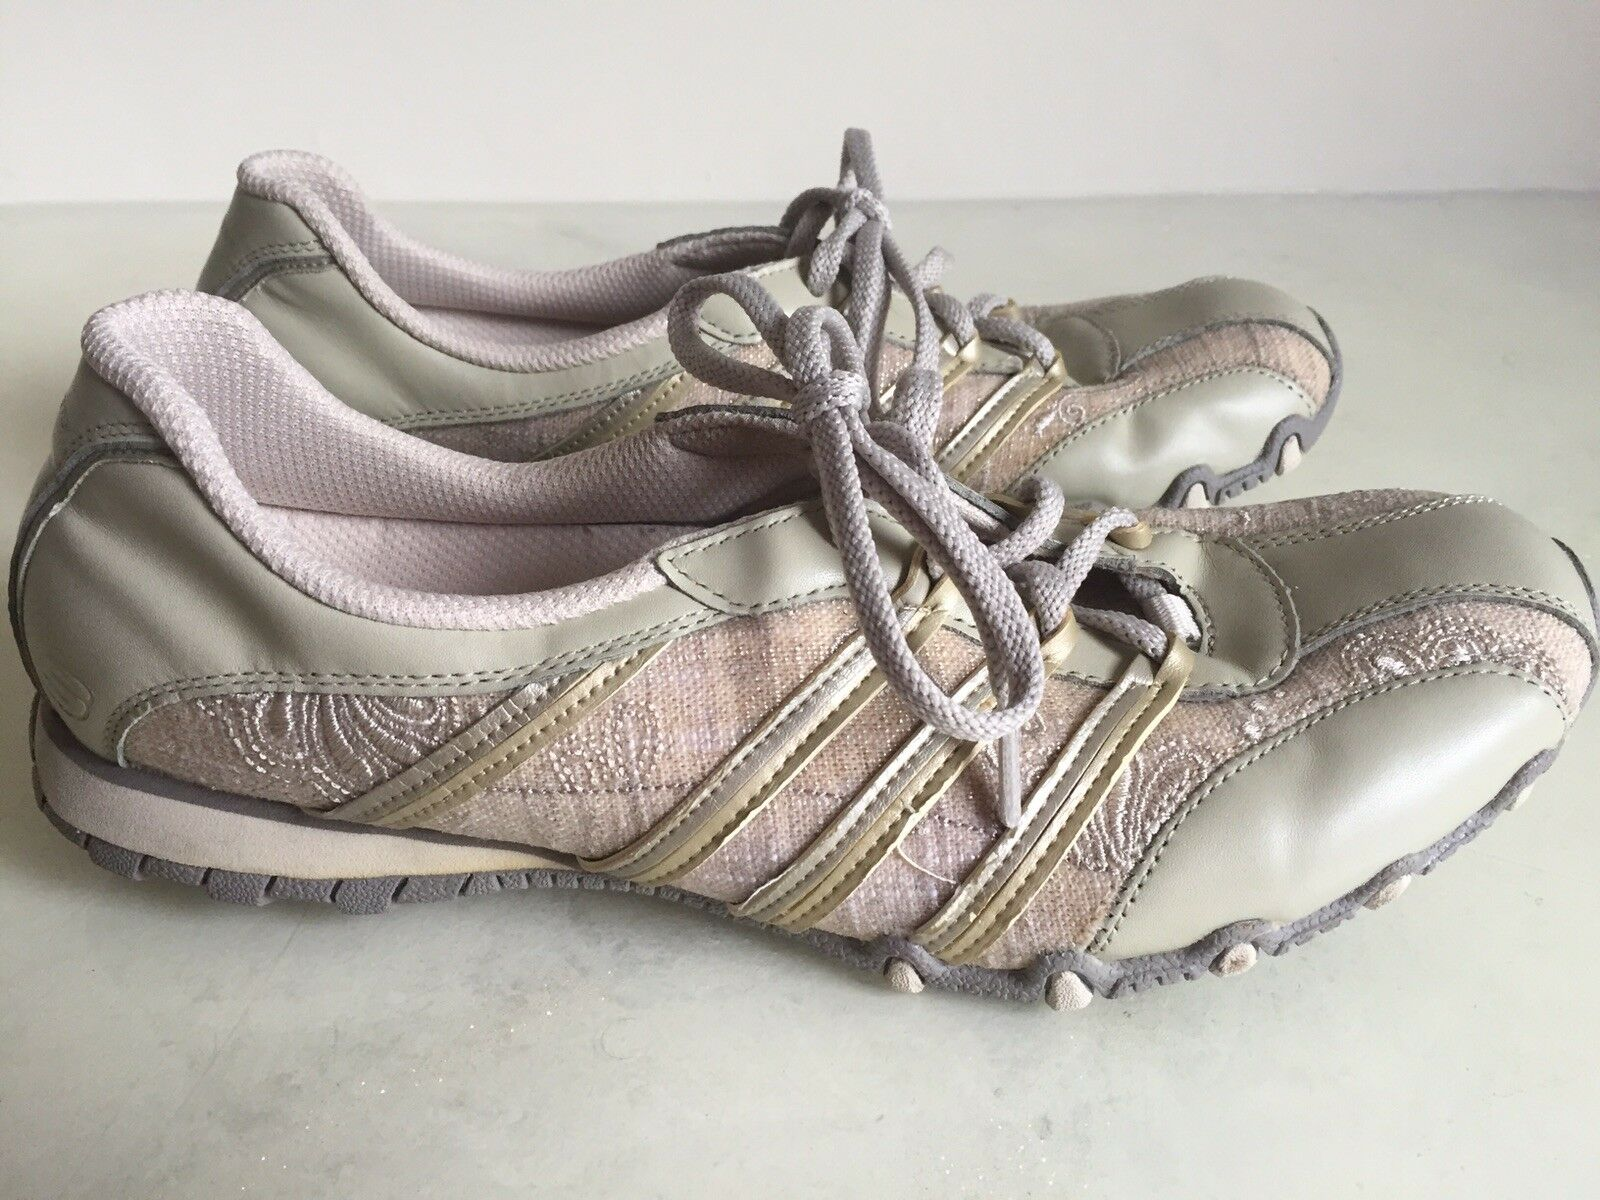 Skechers Womens Cream/Tan embroidered casual shoe size 10 Comfortable and good-looking